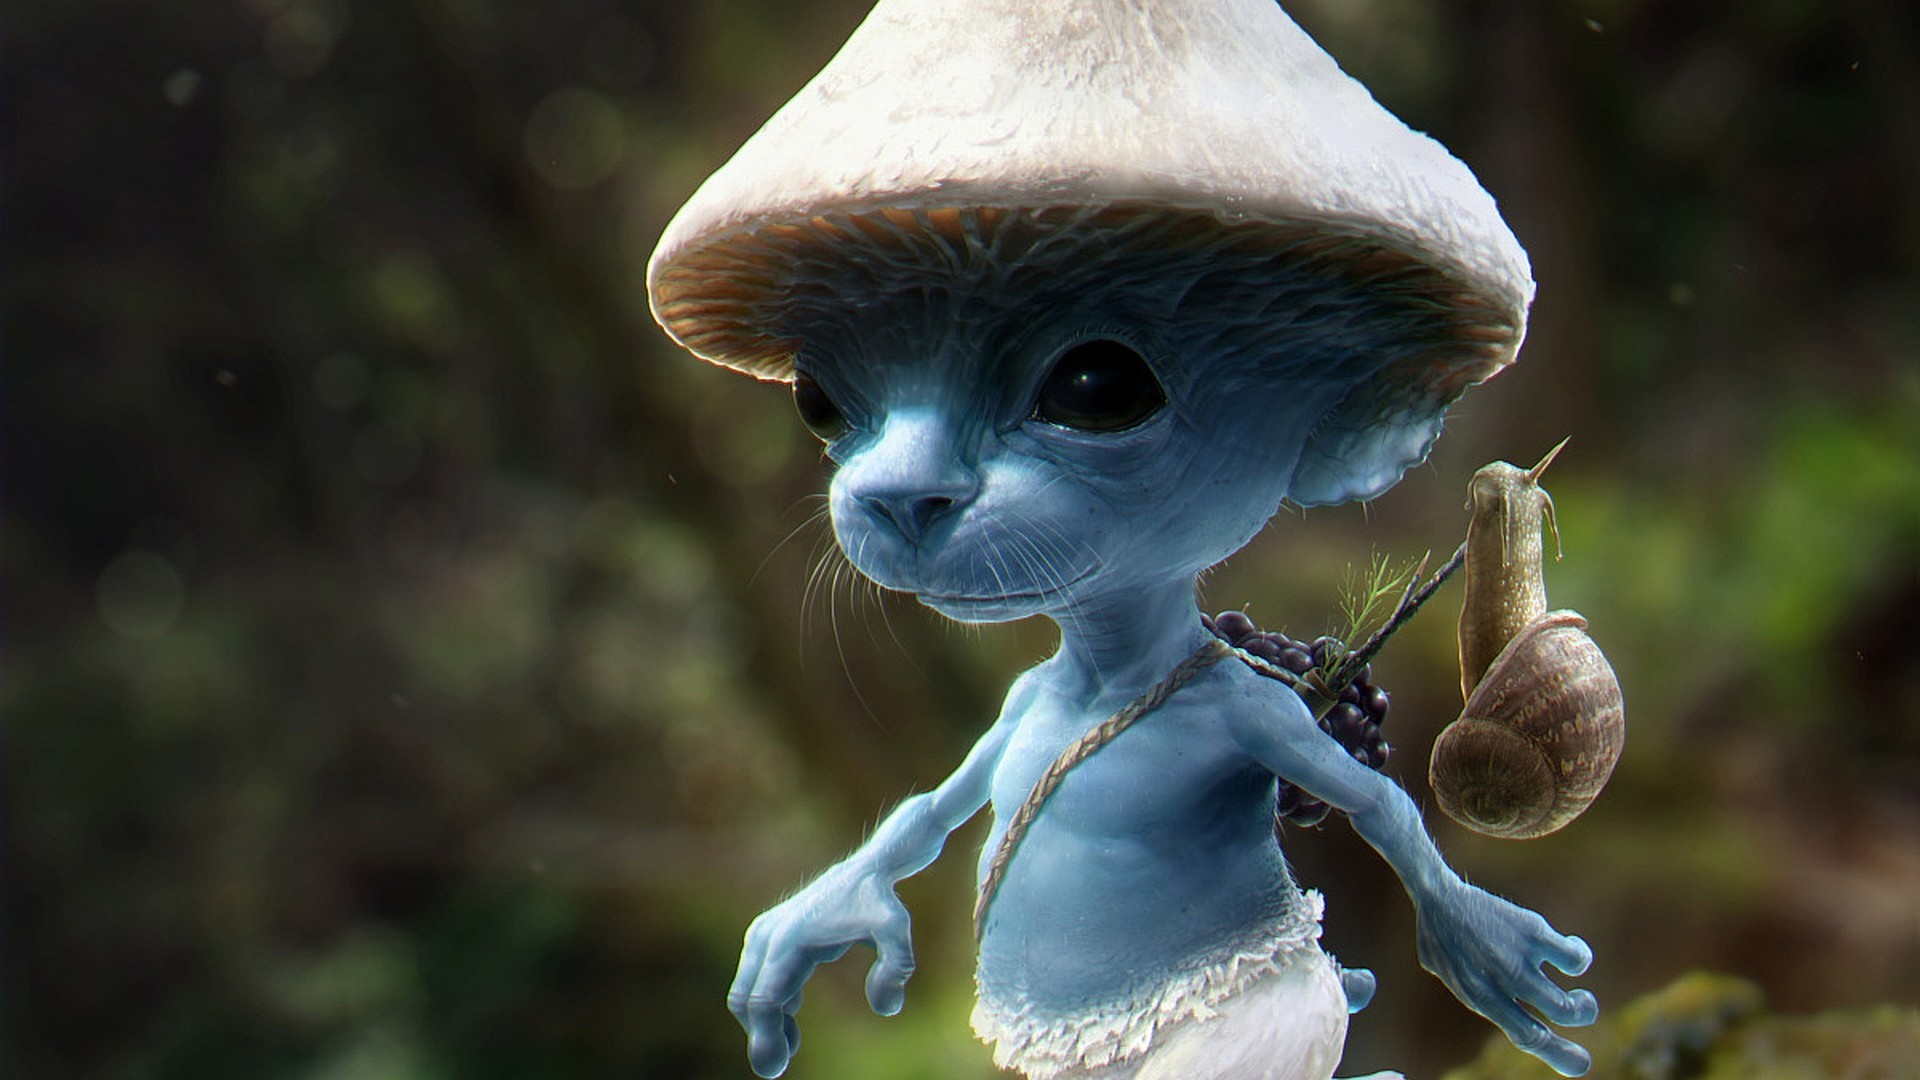 1920x1080 Fantasy Art Mushroom Smurf Wallpaper